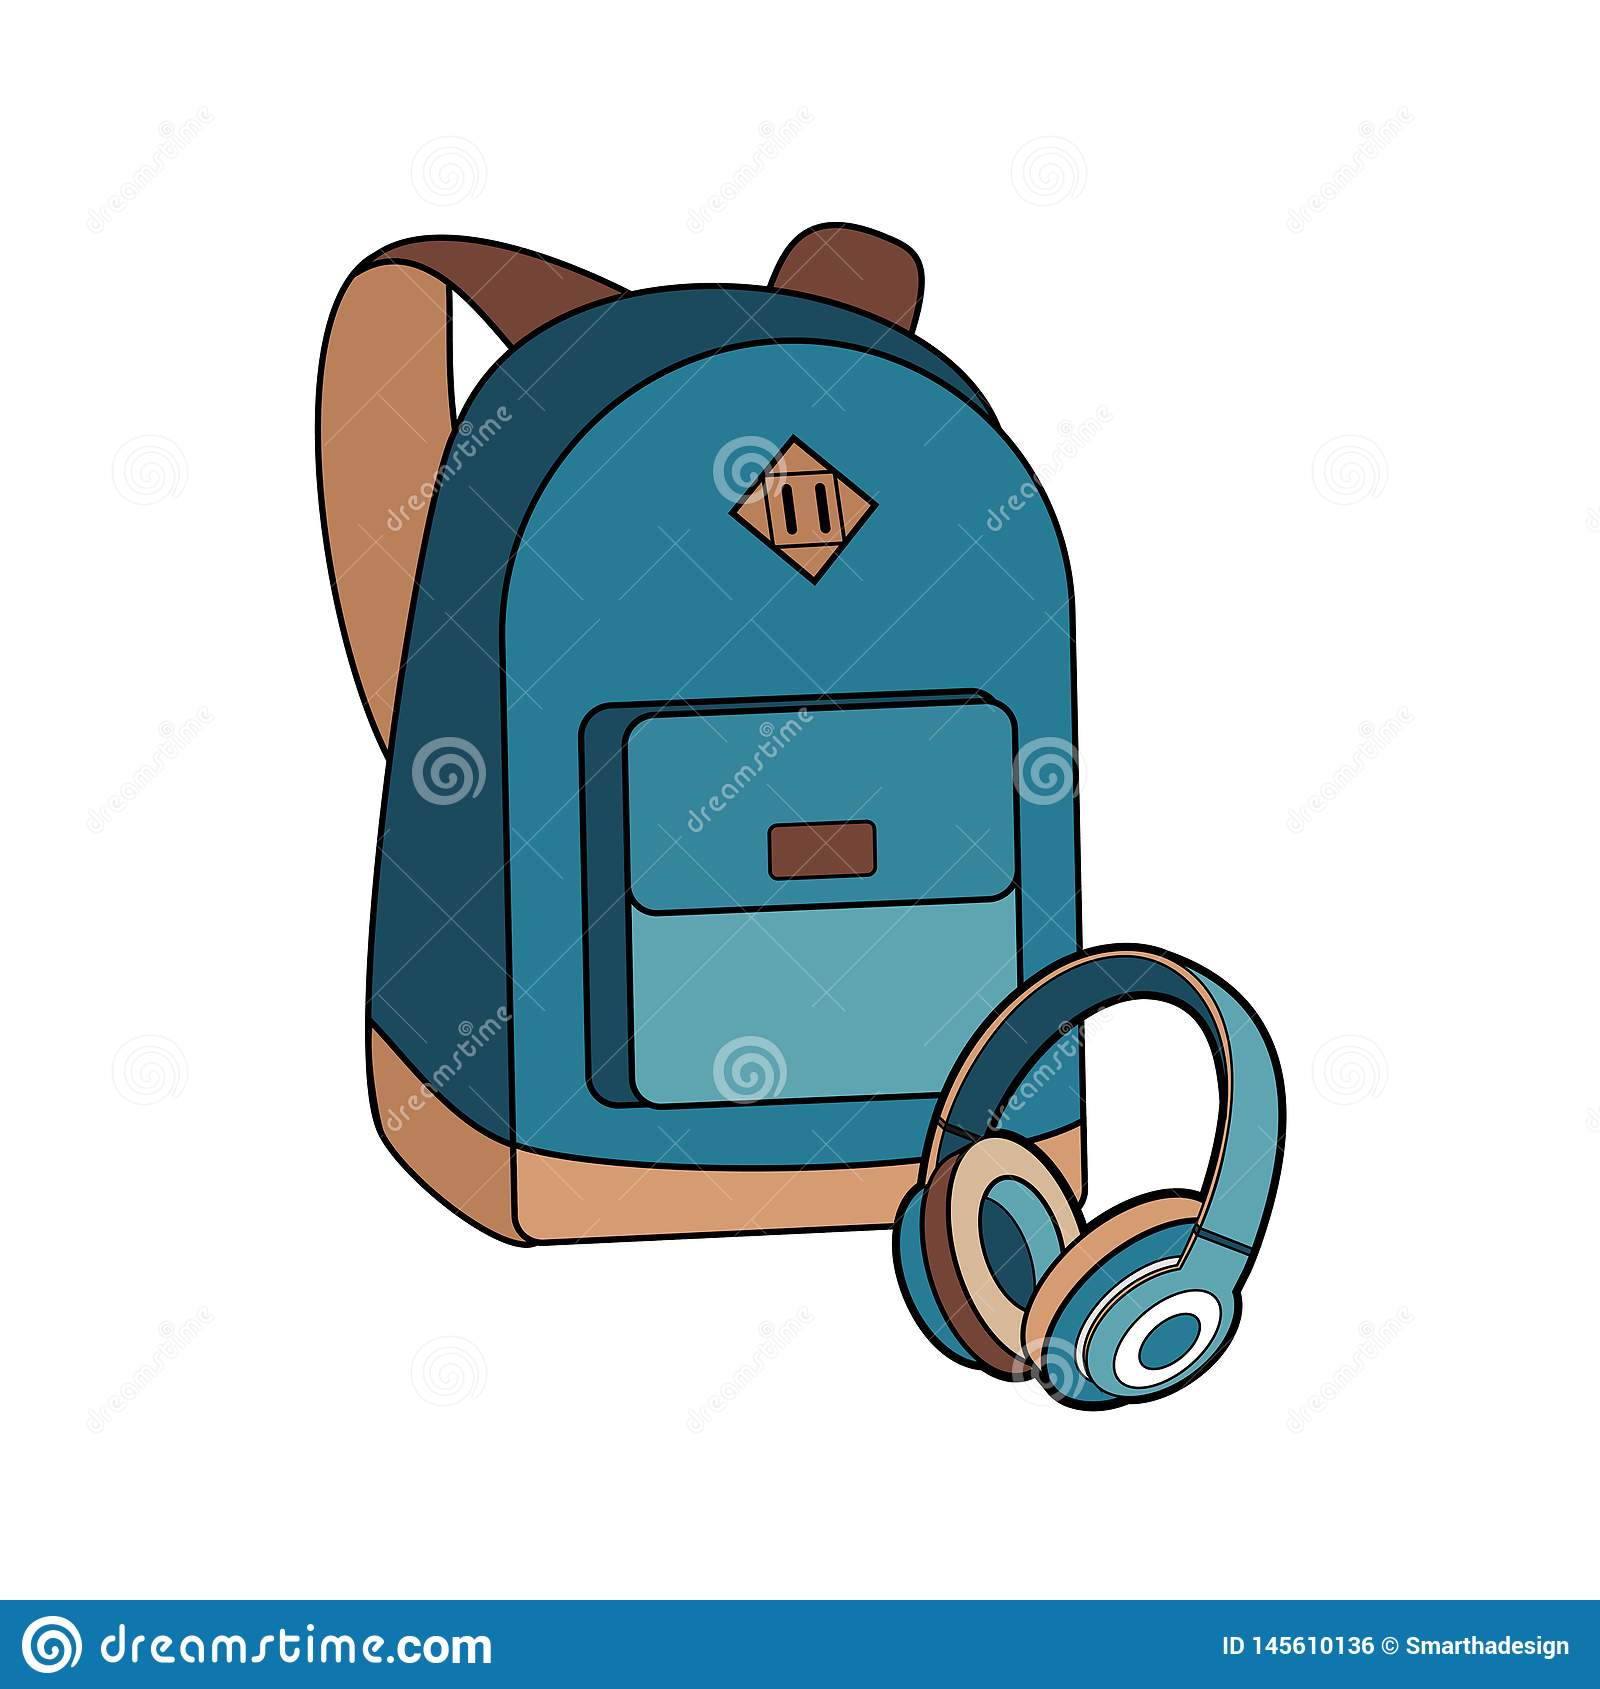 Backpack, bag, rucksack and headphones vector isolated set. Youth fashion hipster knapsack illustration in minimalist style.